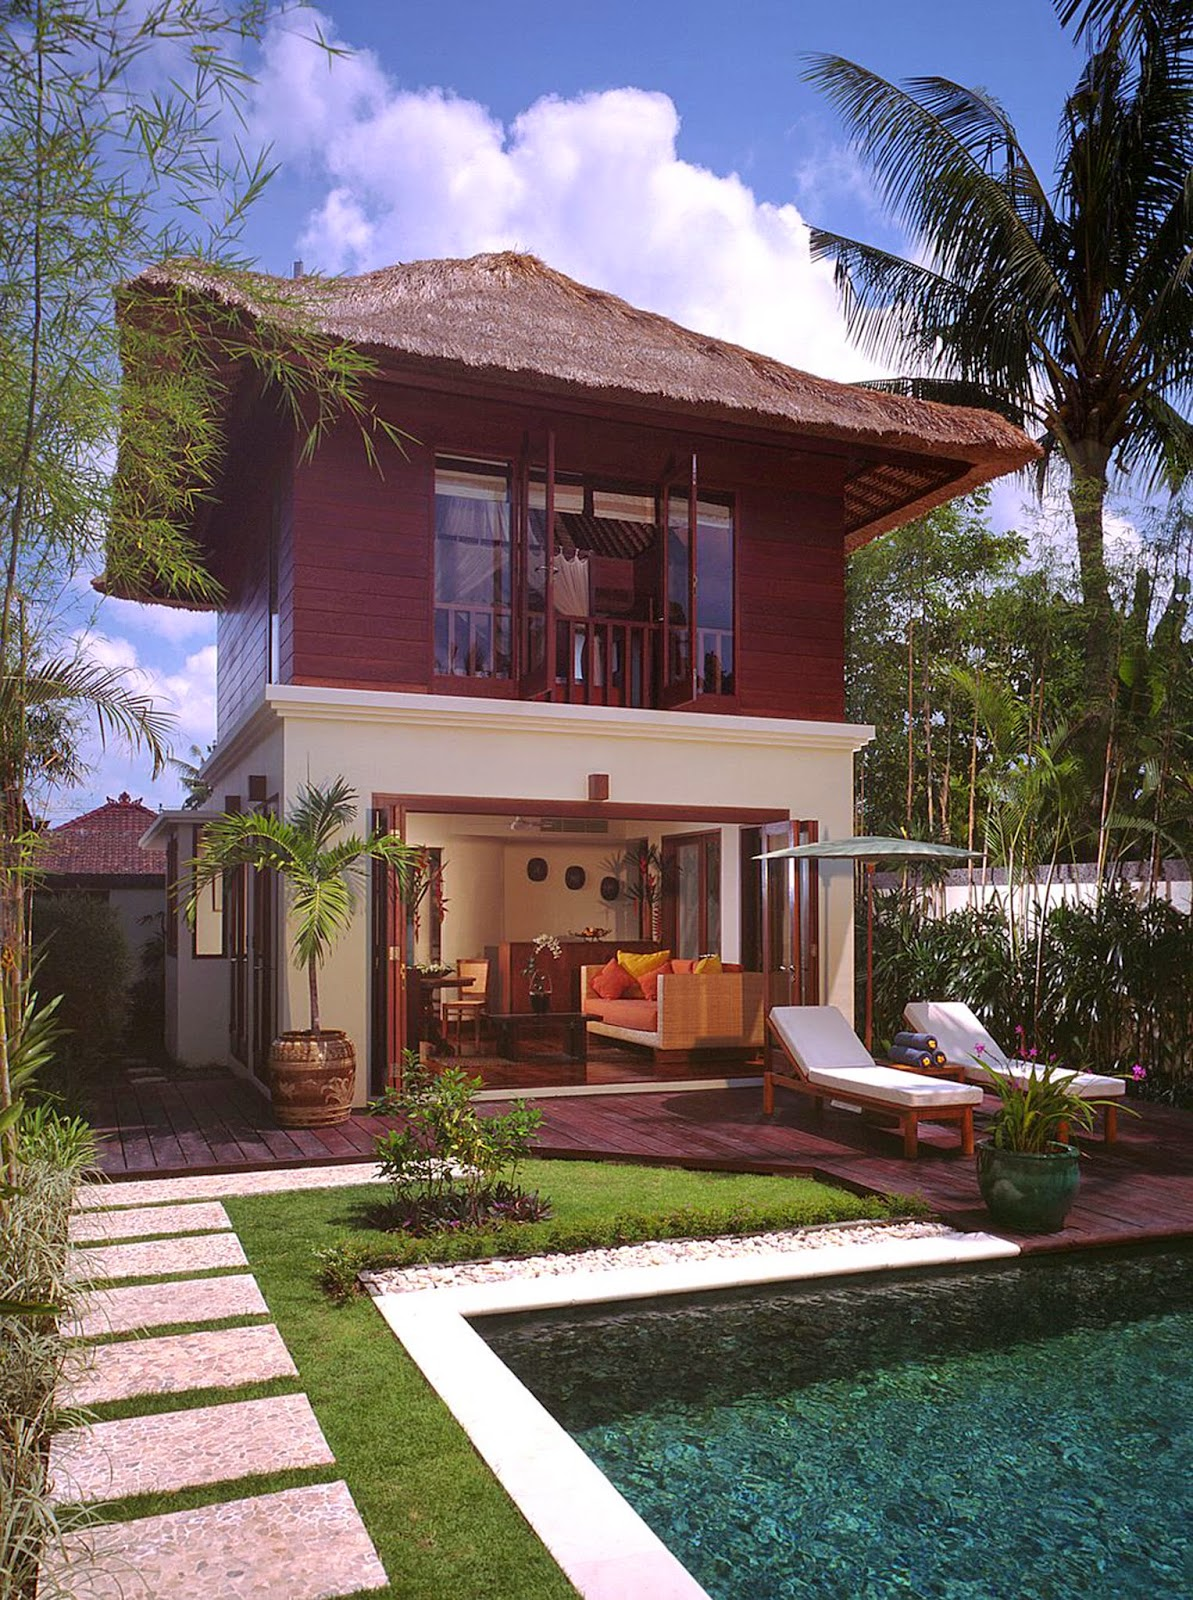 The Pavilions Bali, Honeymoon Villa, Pool